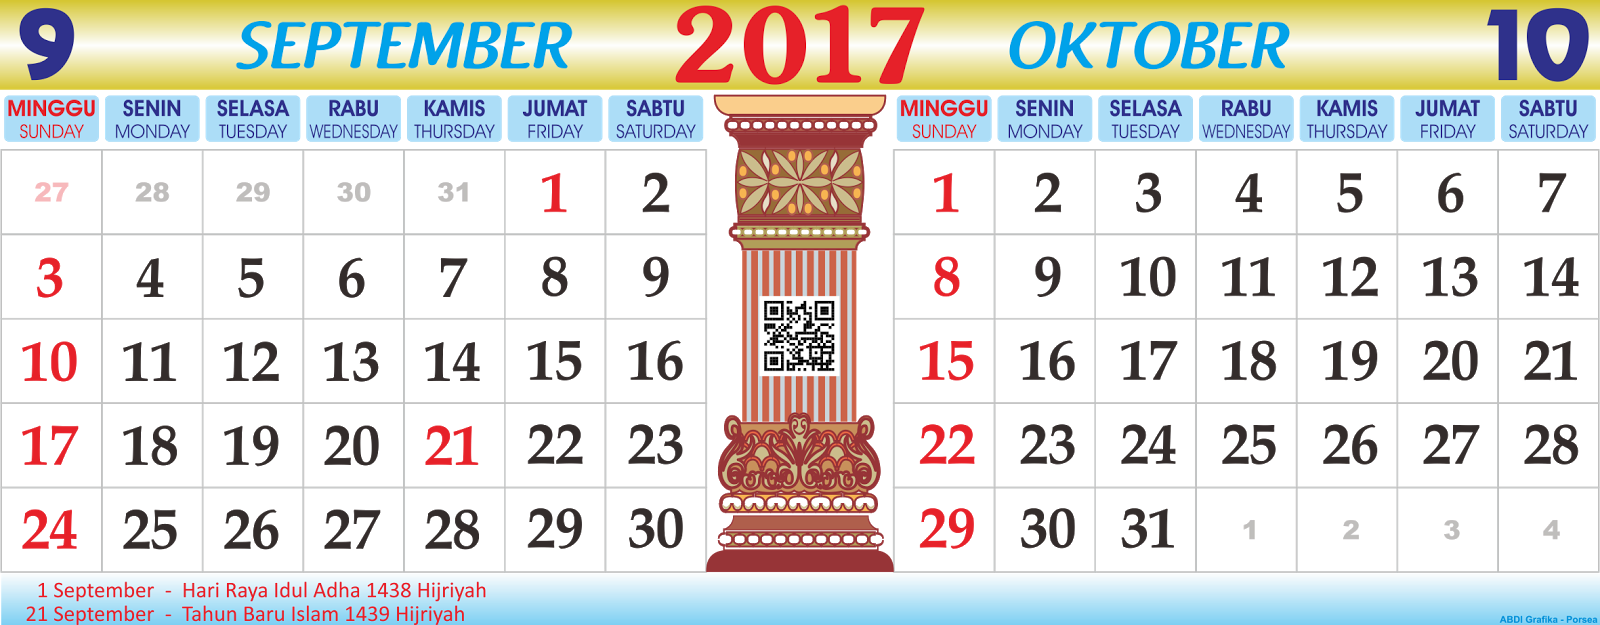 vector for free kalender 2017 september oktober. Black Bedroom Furniture Sets. Home Design Ideas